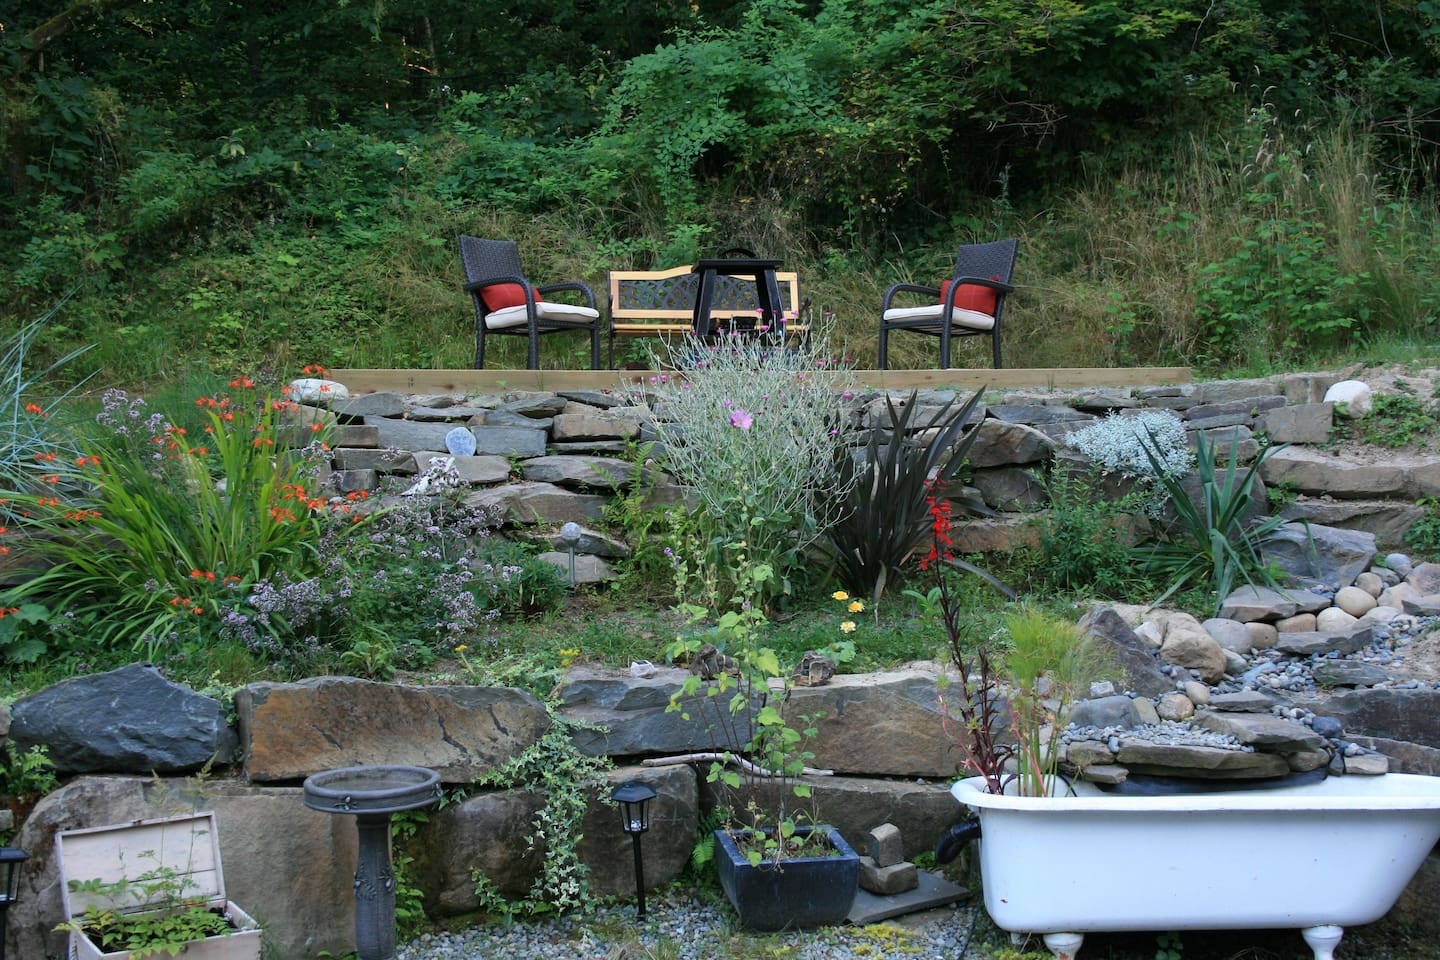 Fire Pit in the garden area.